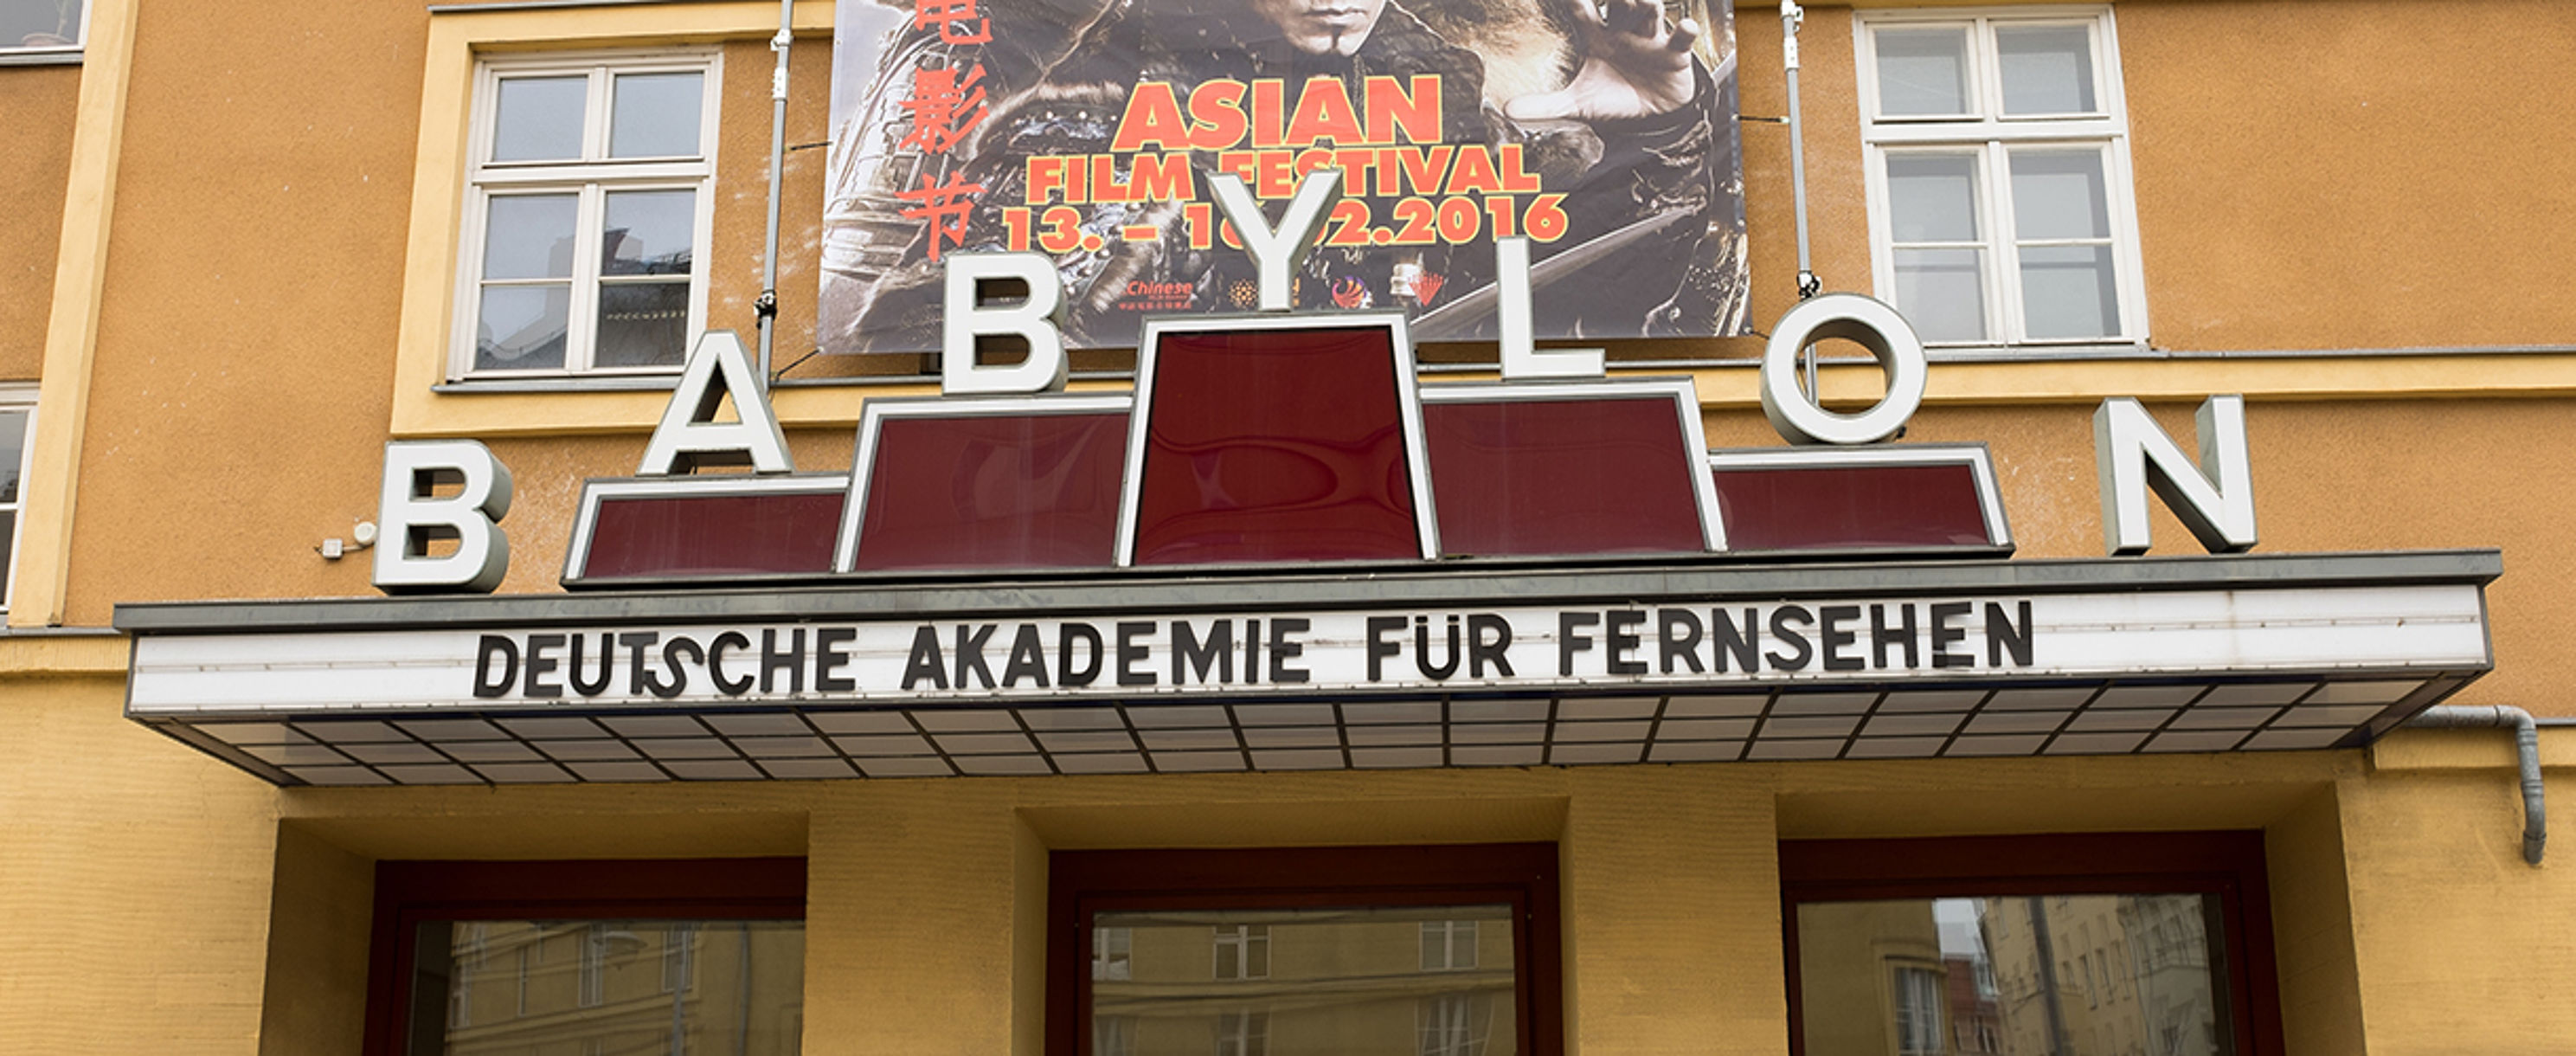 Kino Babylon in Berlin